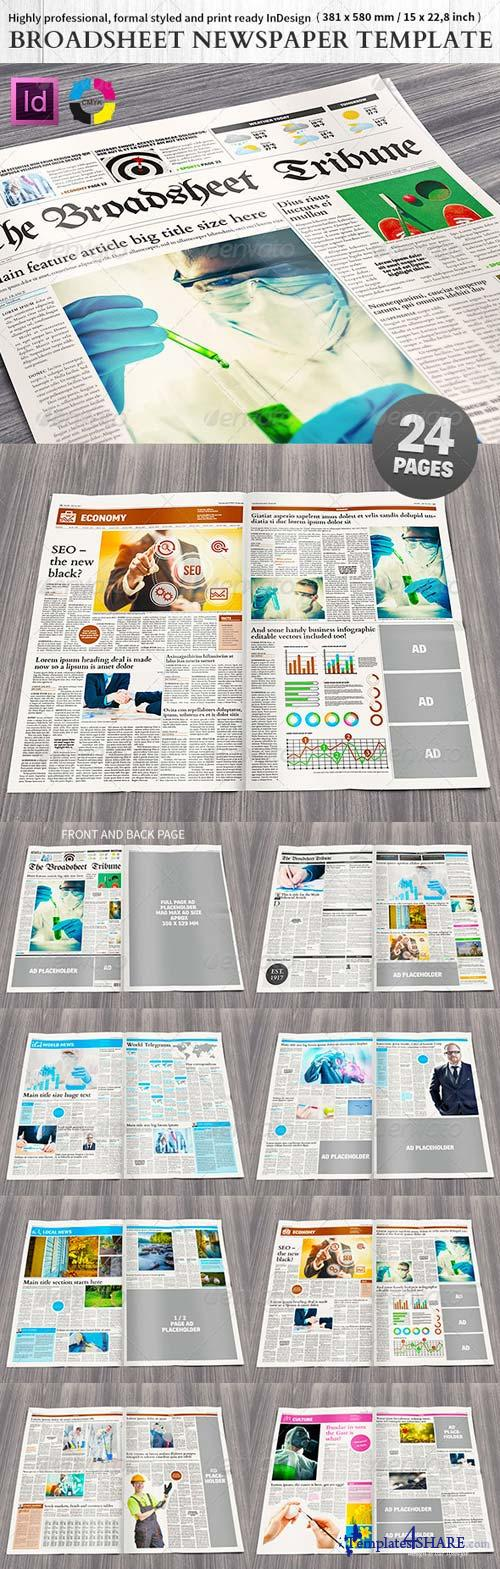 GraphicRiver Broadsheet Newspaper Template - 24 pages